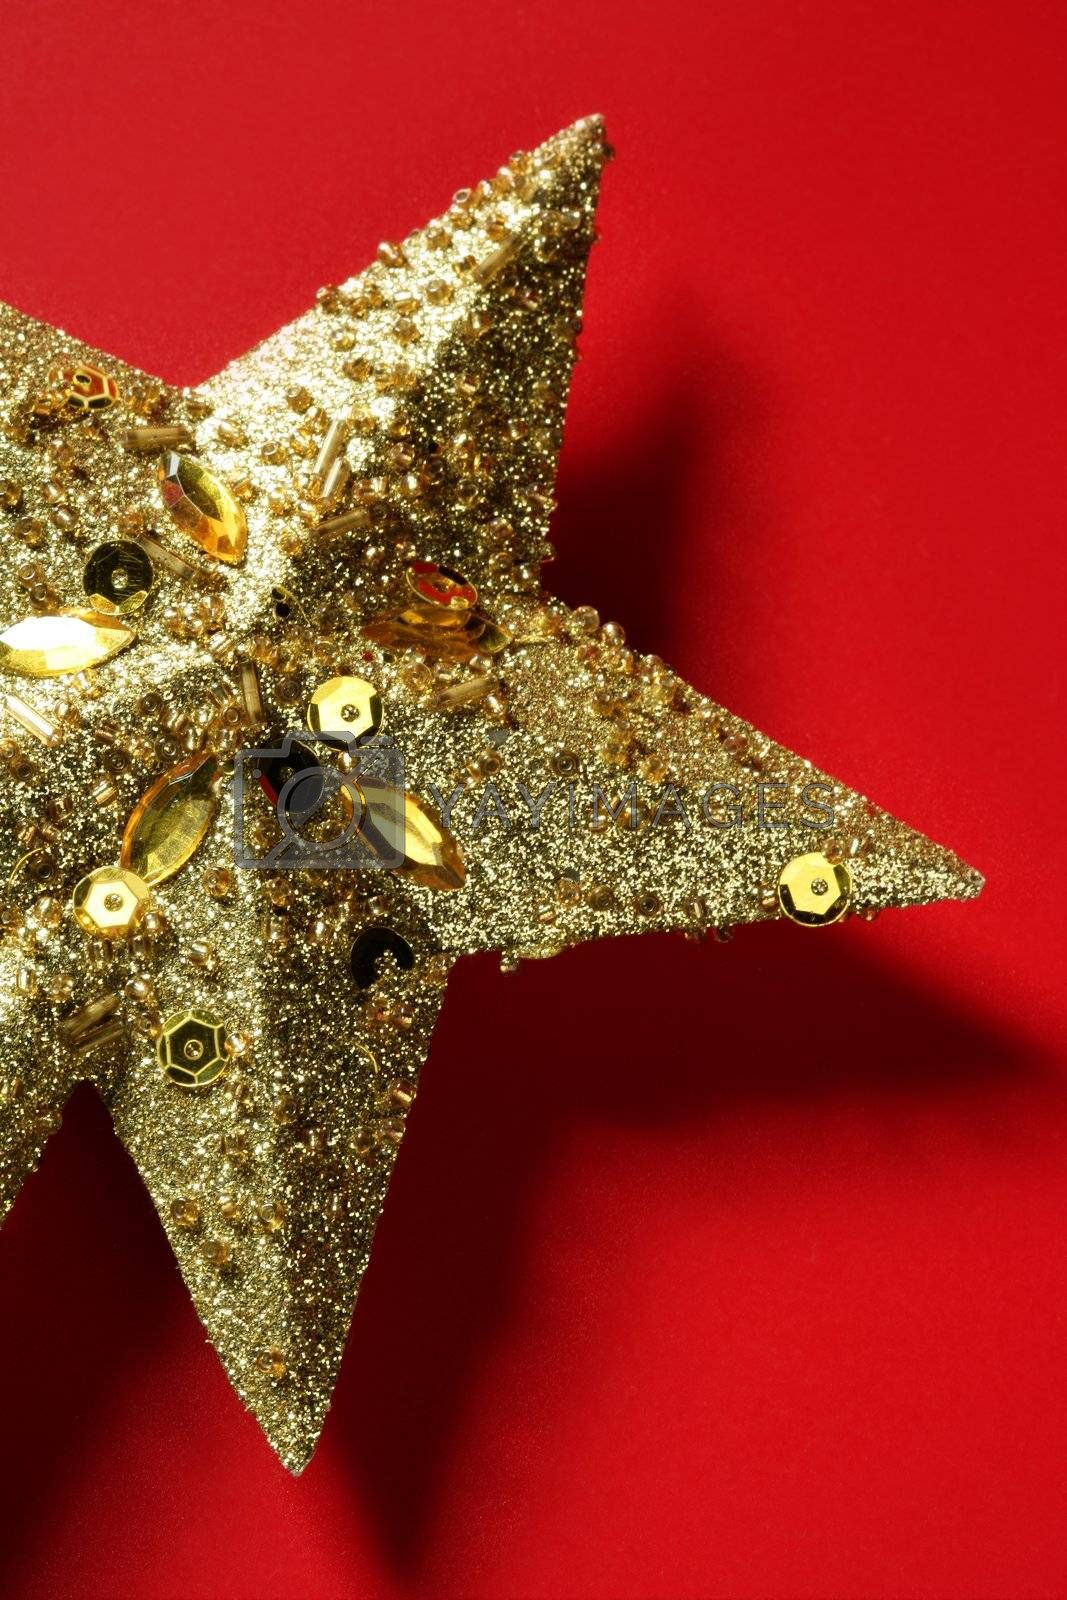 Royalty free image of Christmas star decoration still on red background by lunamarina